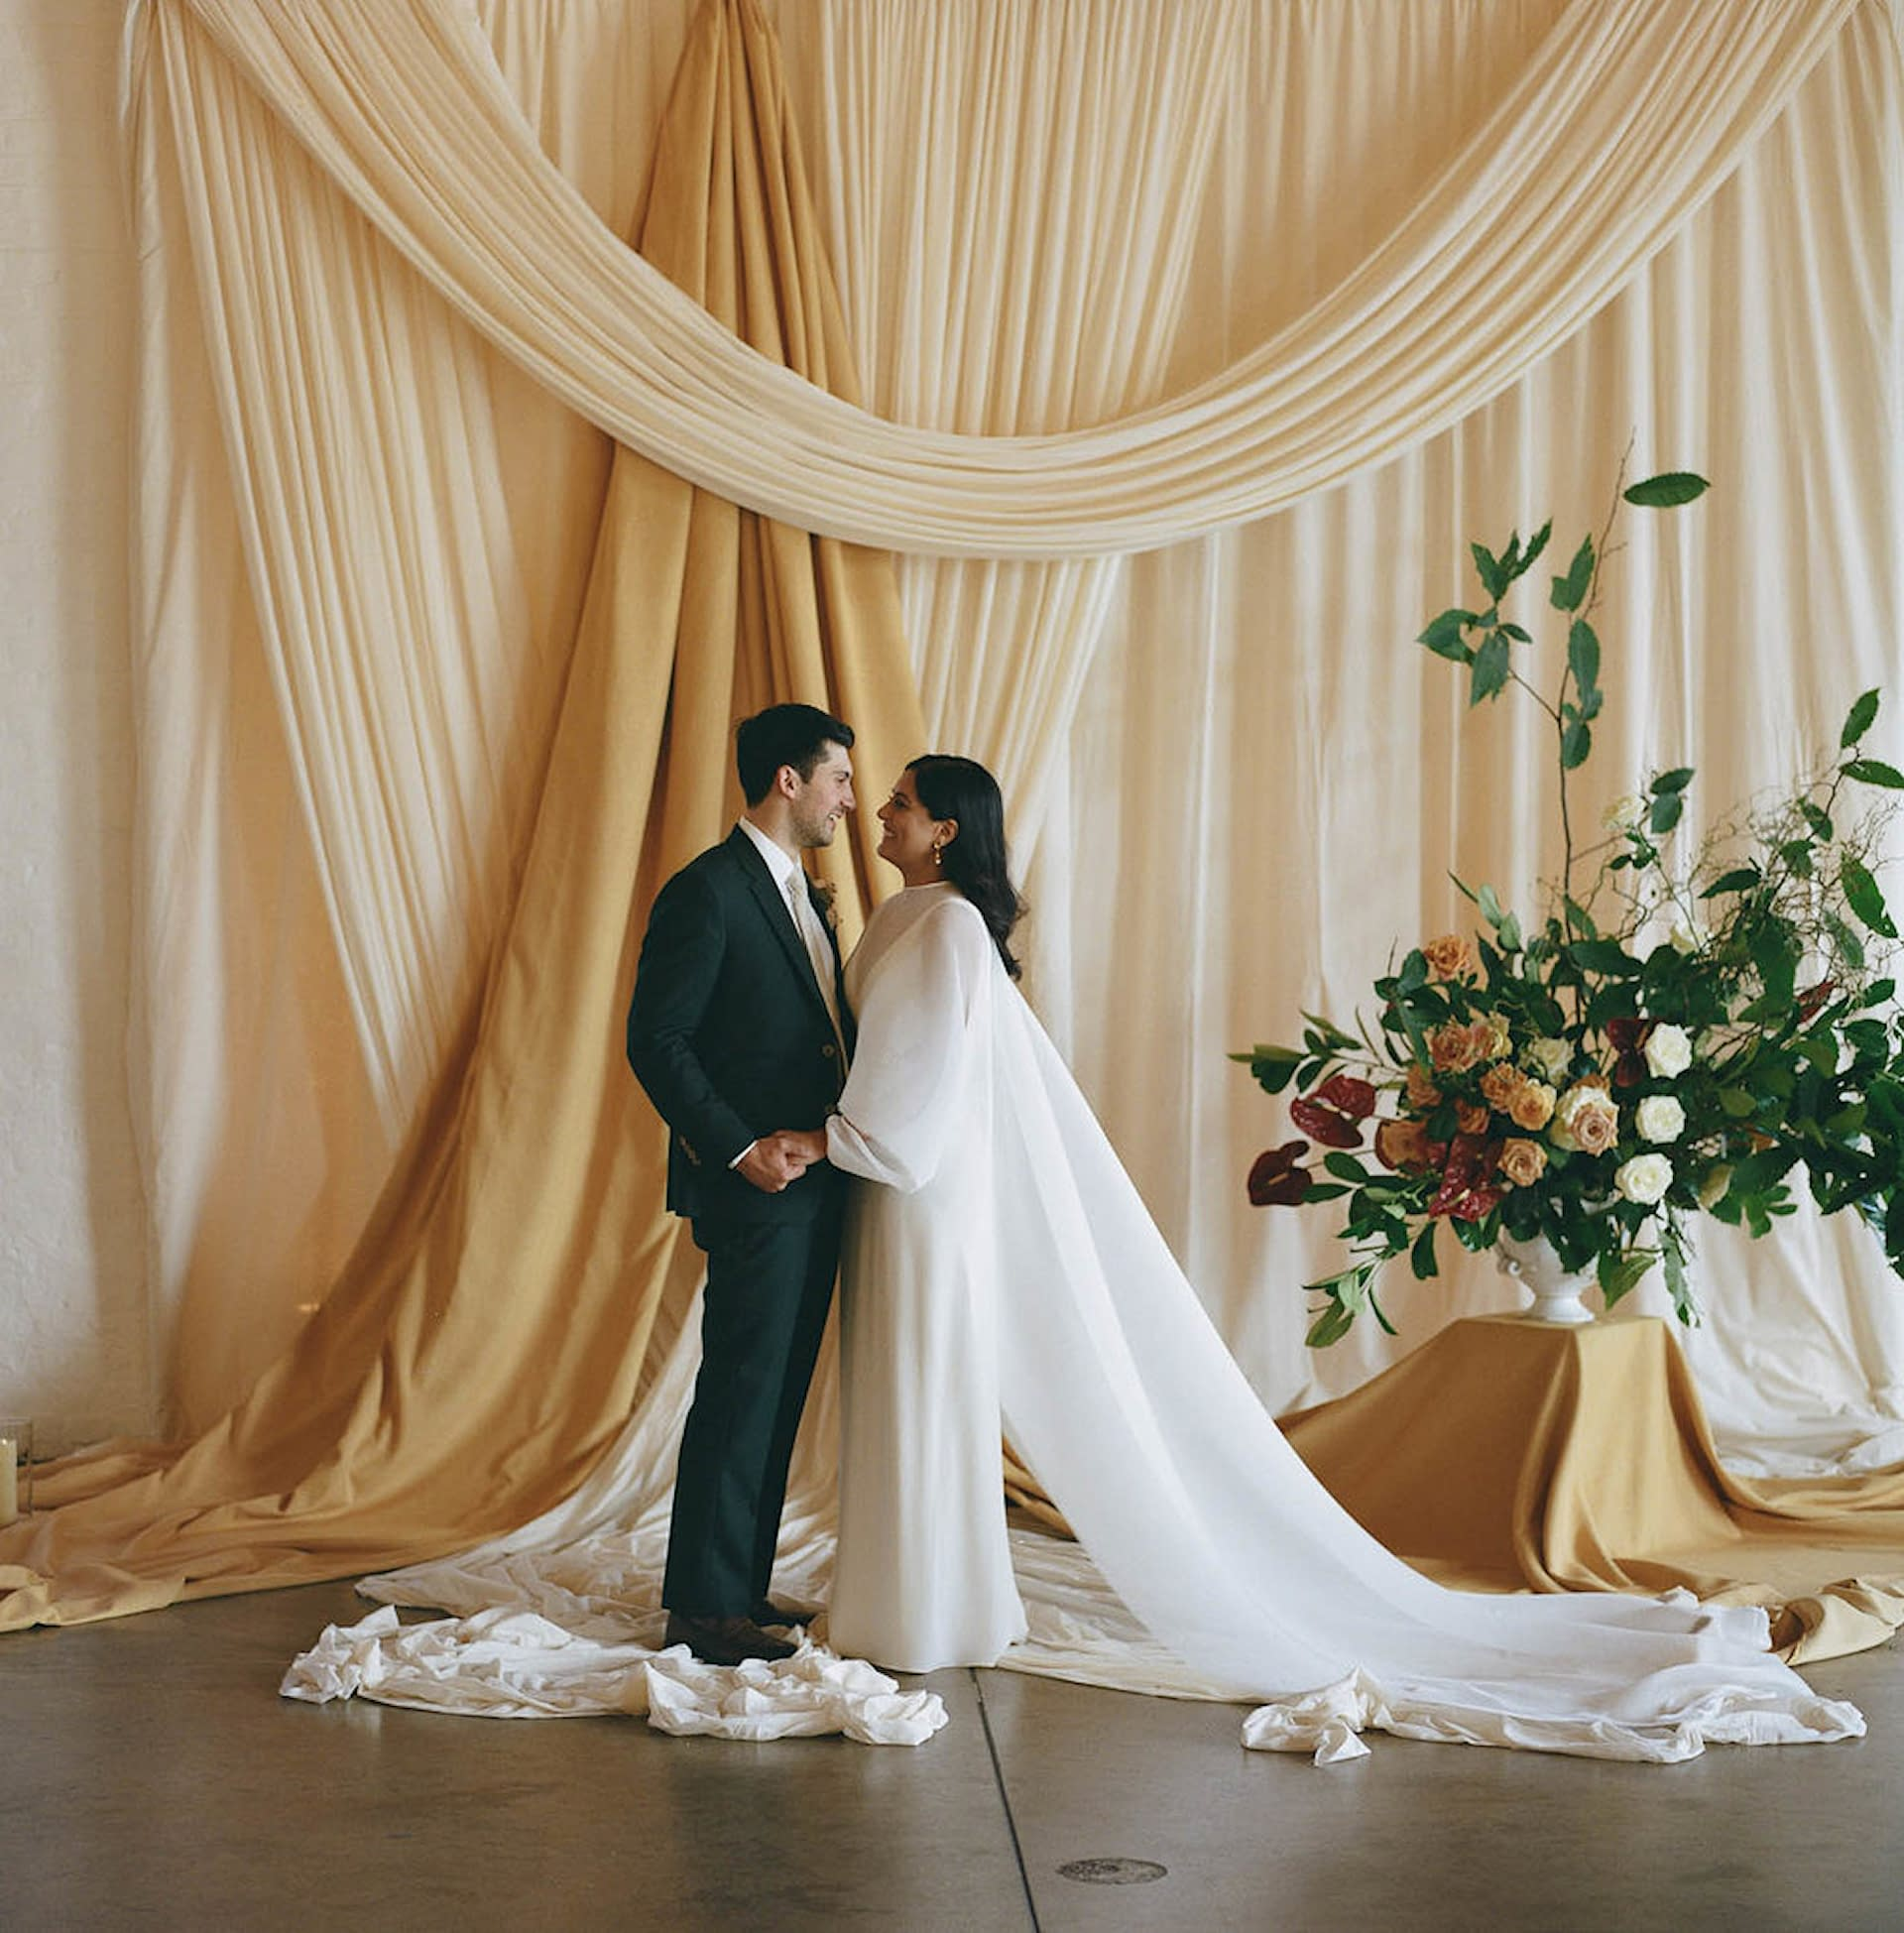 Interior design inspired bespoke wedding backdrop at Trinity Buoy Wharf London in natural fabrics with the bride and groom pictured in the foreground